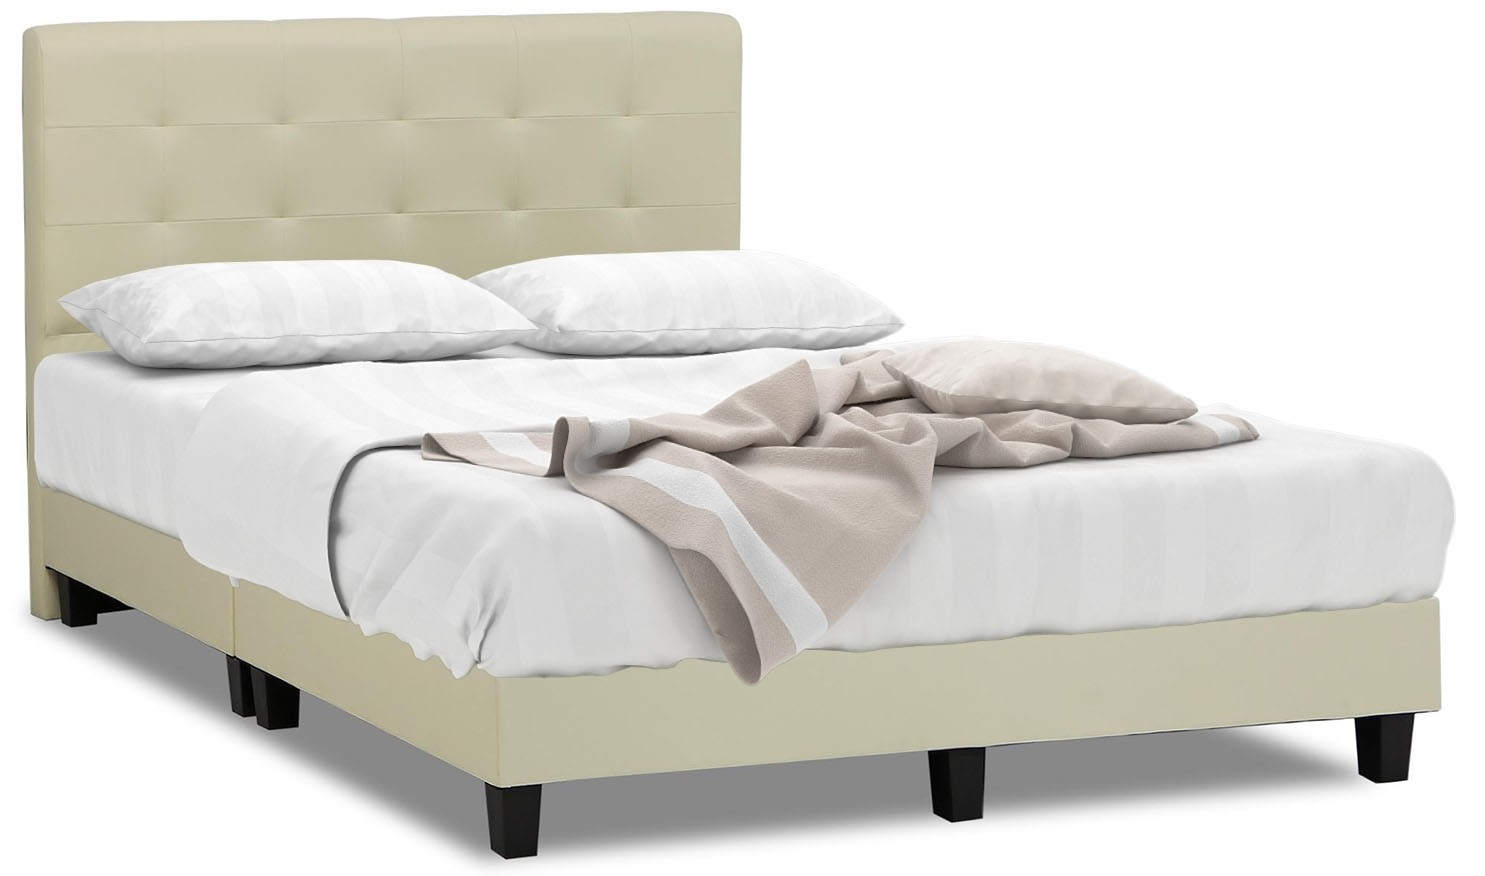 hight resolution of trizone package mr2 tri zone 10 individual pocketed spring mattress bedframe